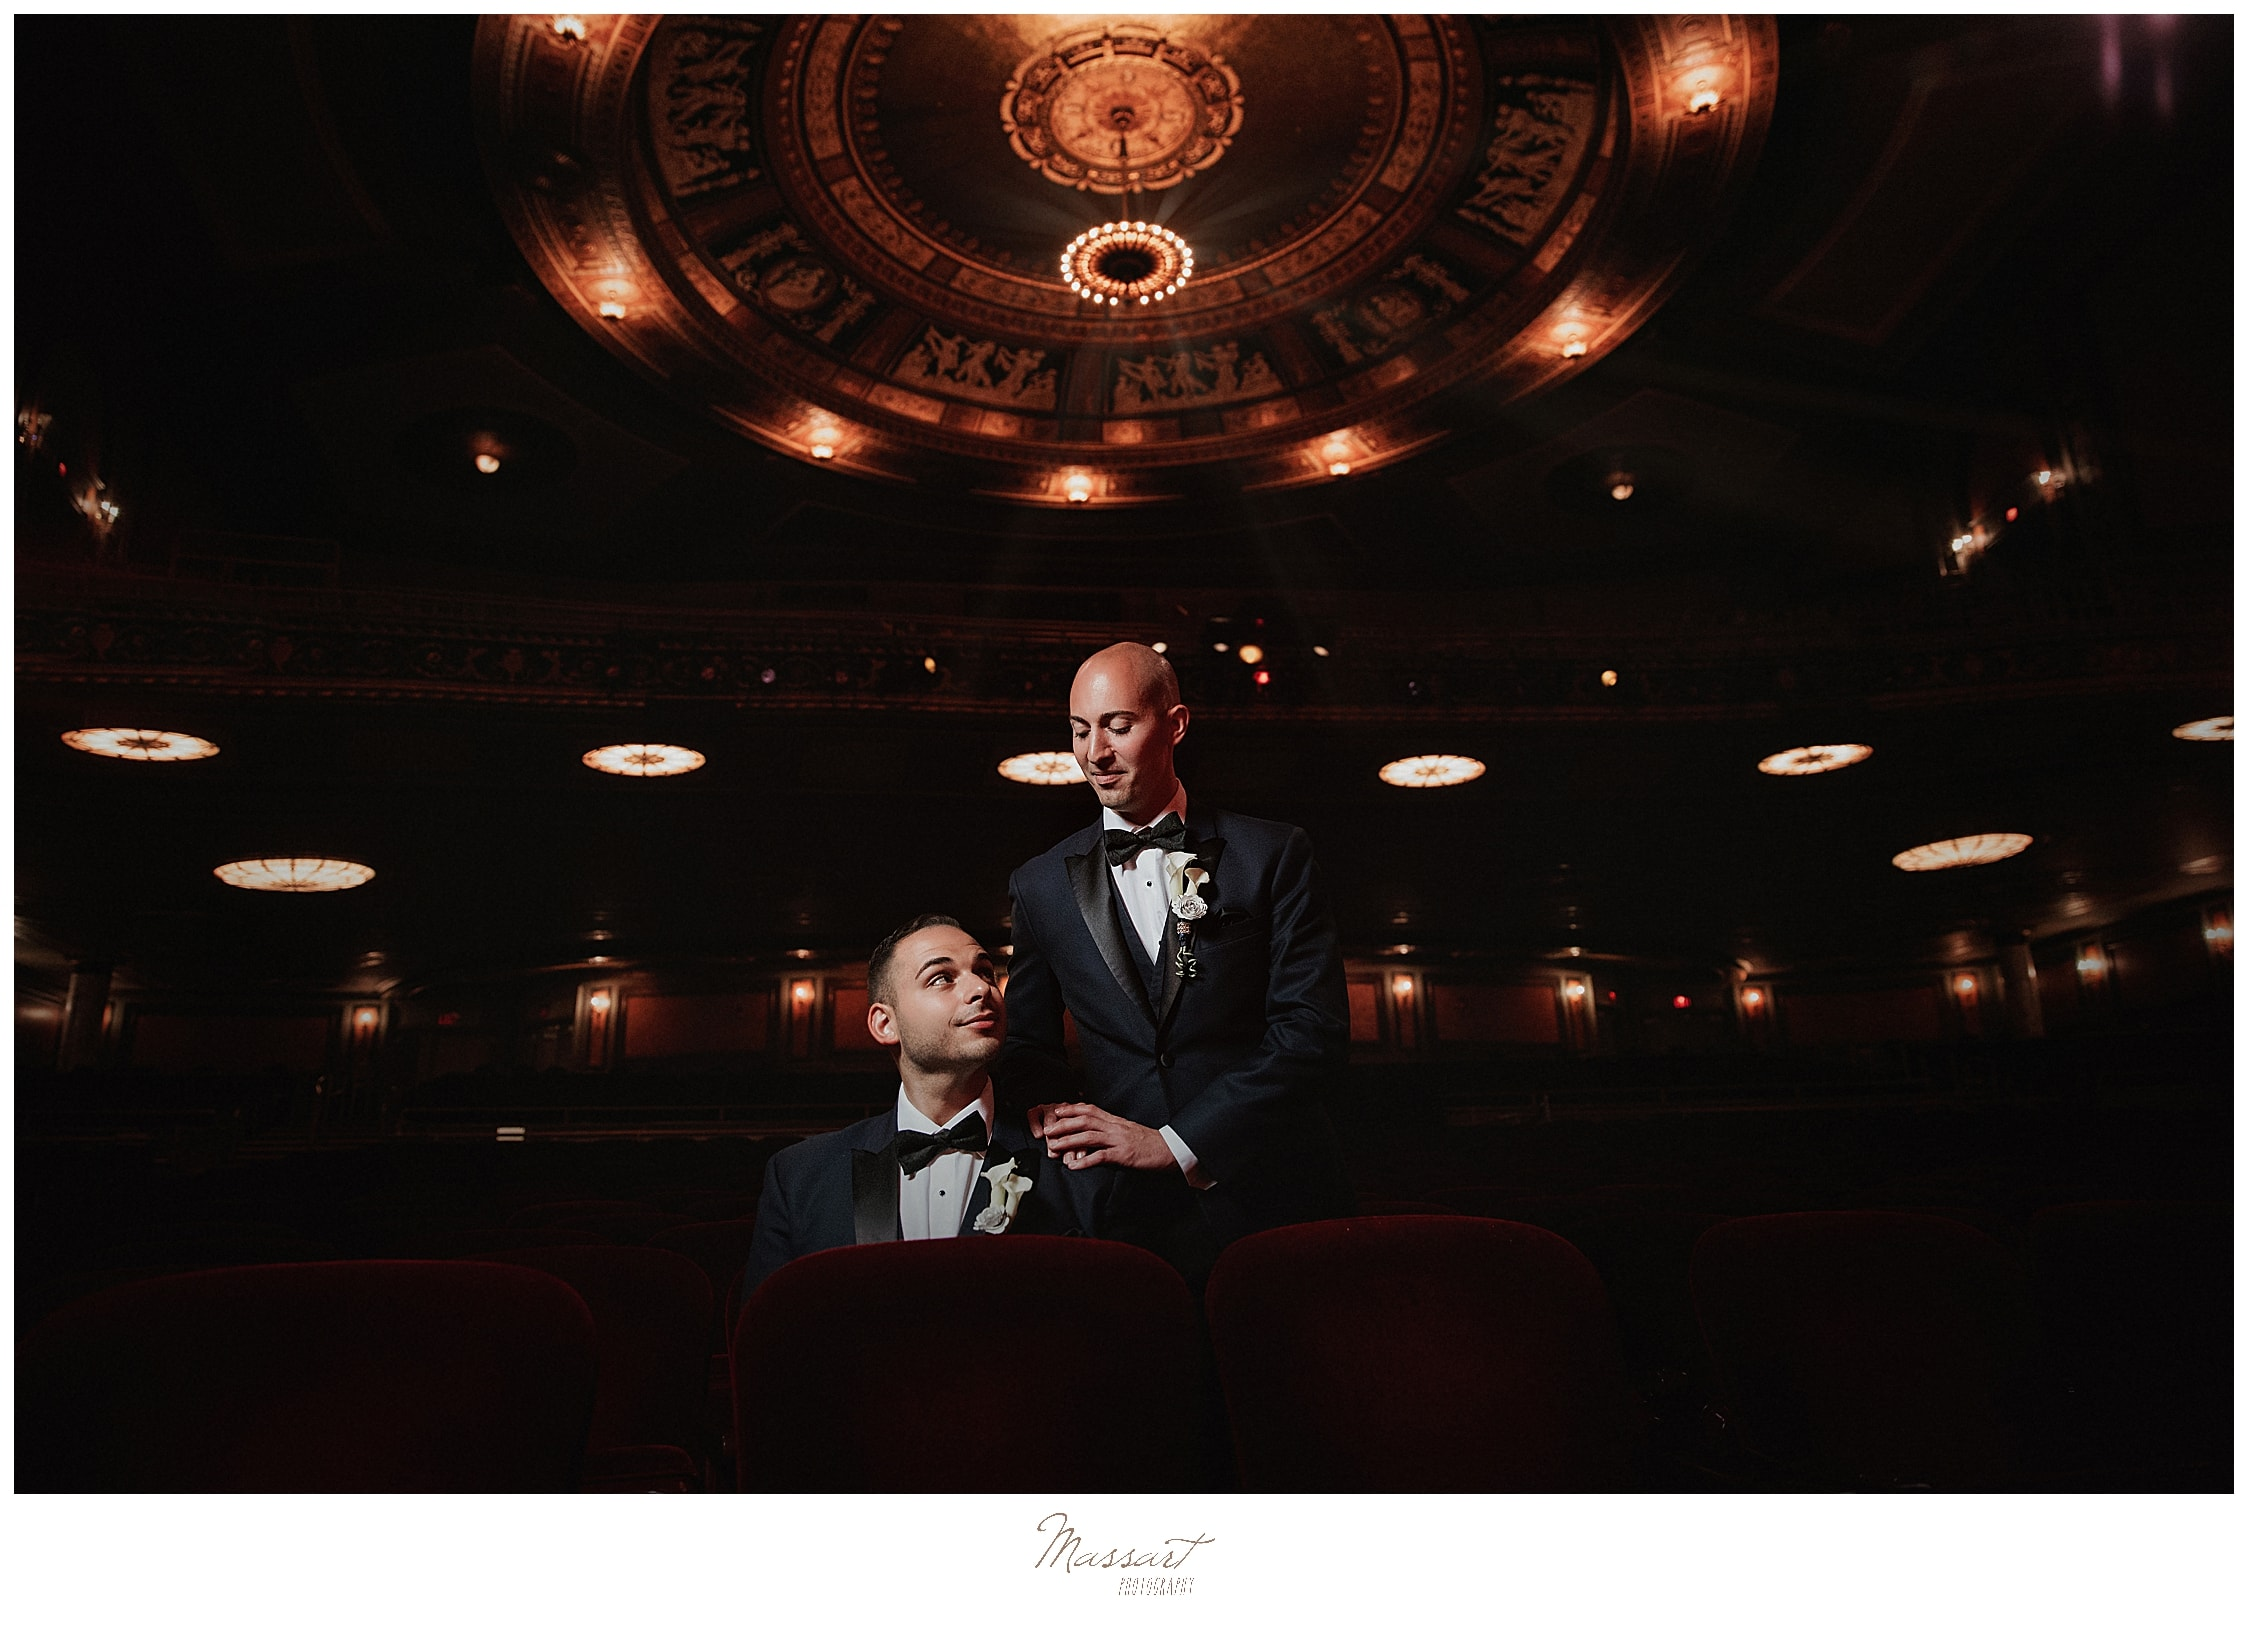 portrait of grooms at Palace Theater wedding by CT wedding photographers Massart Photography